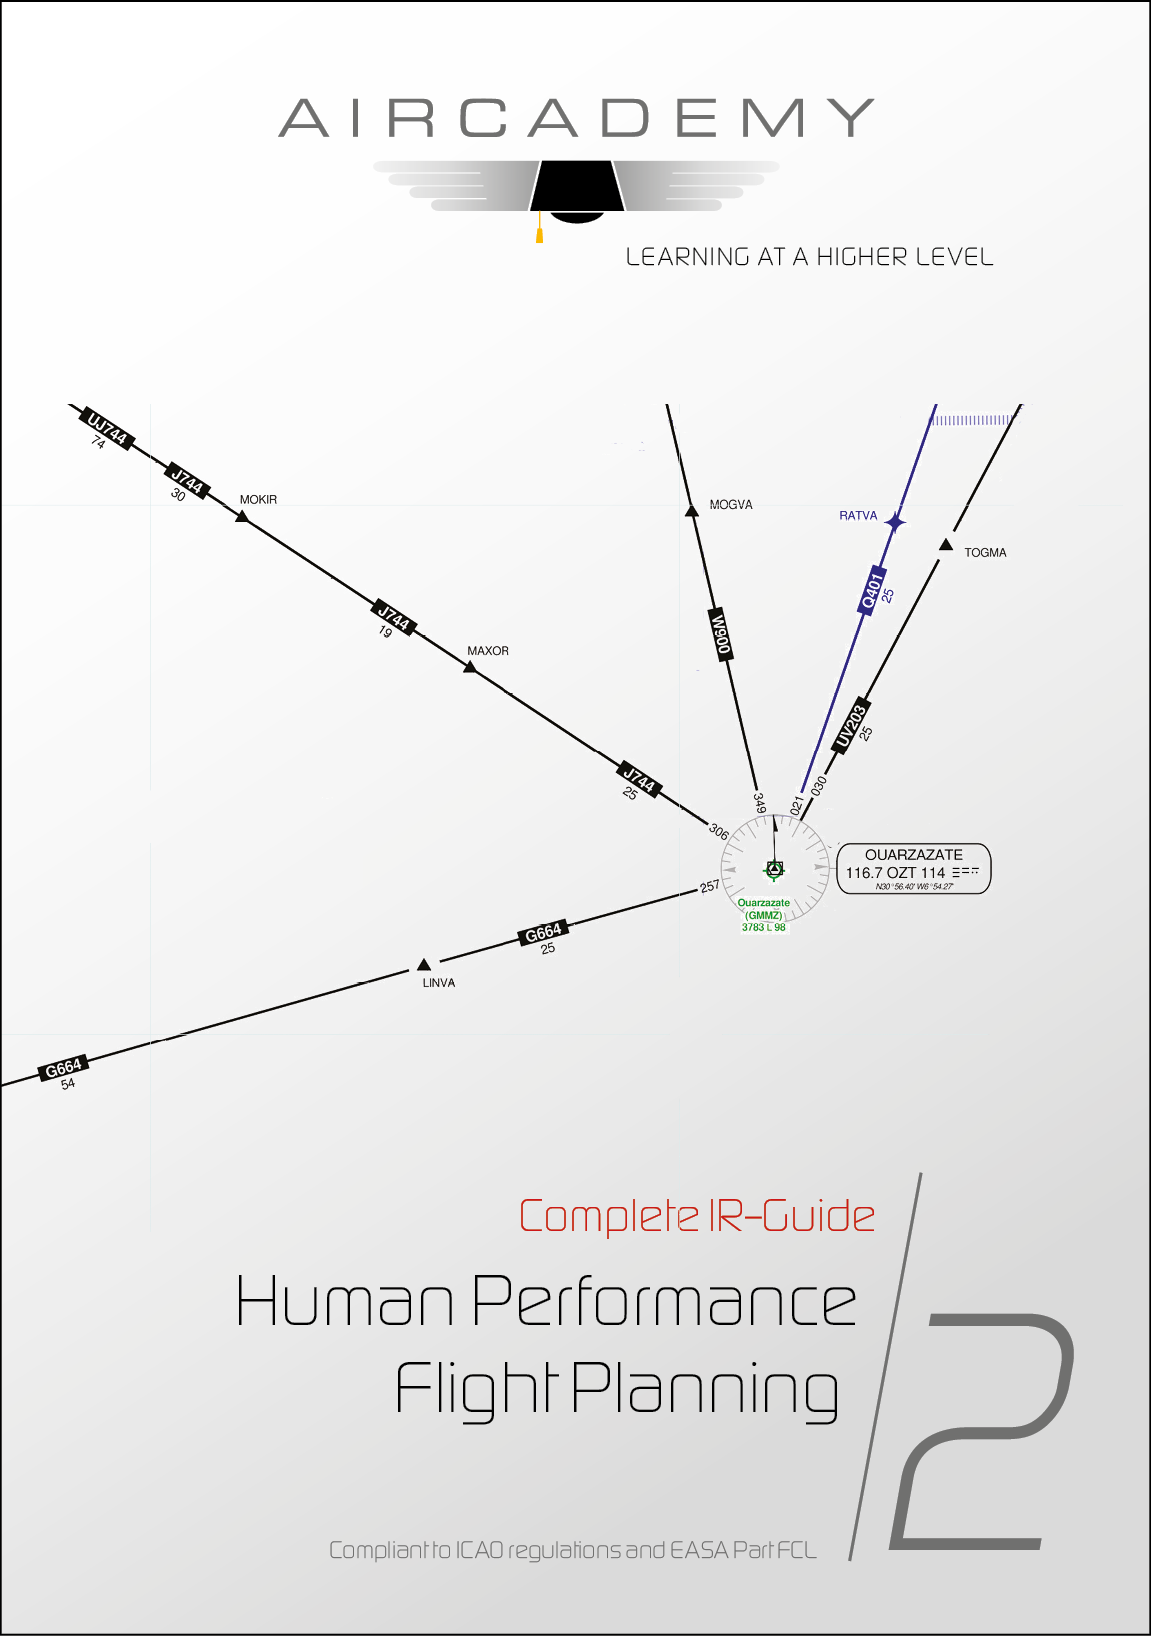 Human Performance & Flight Planning - Complete IR-Guide Volume 2